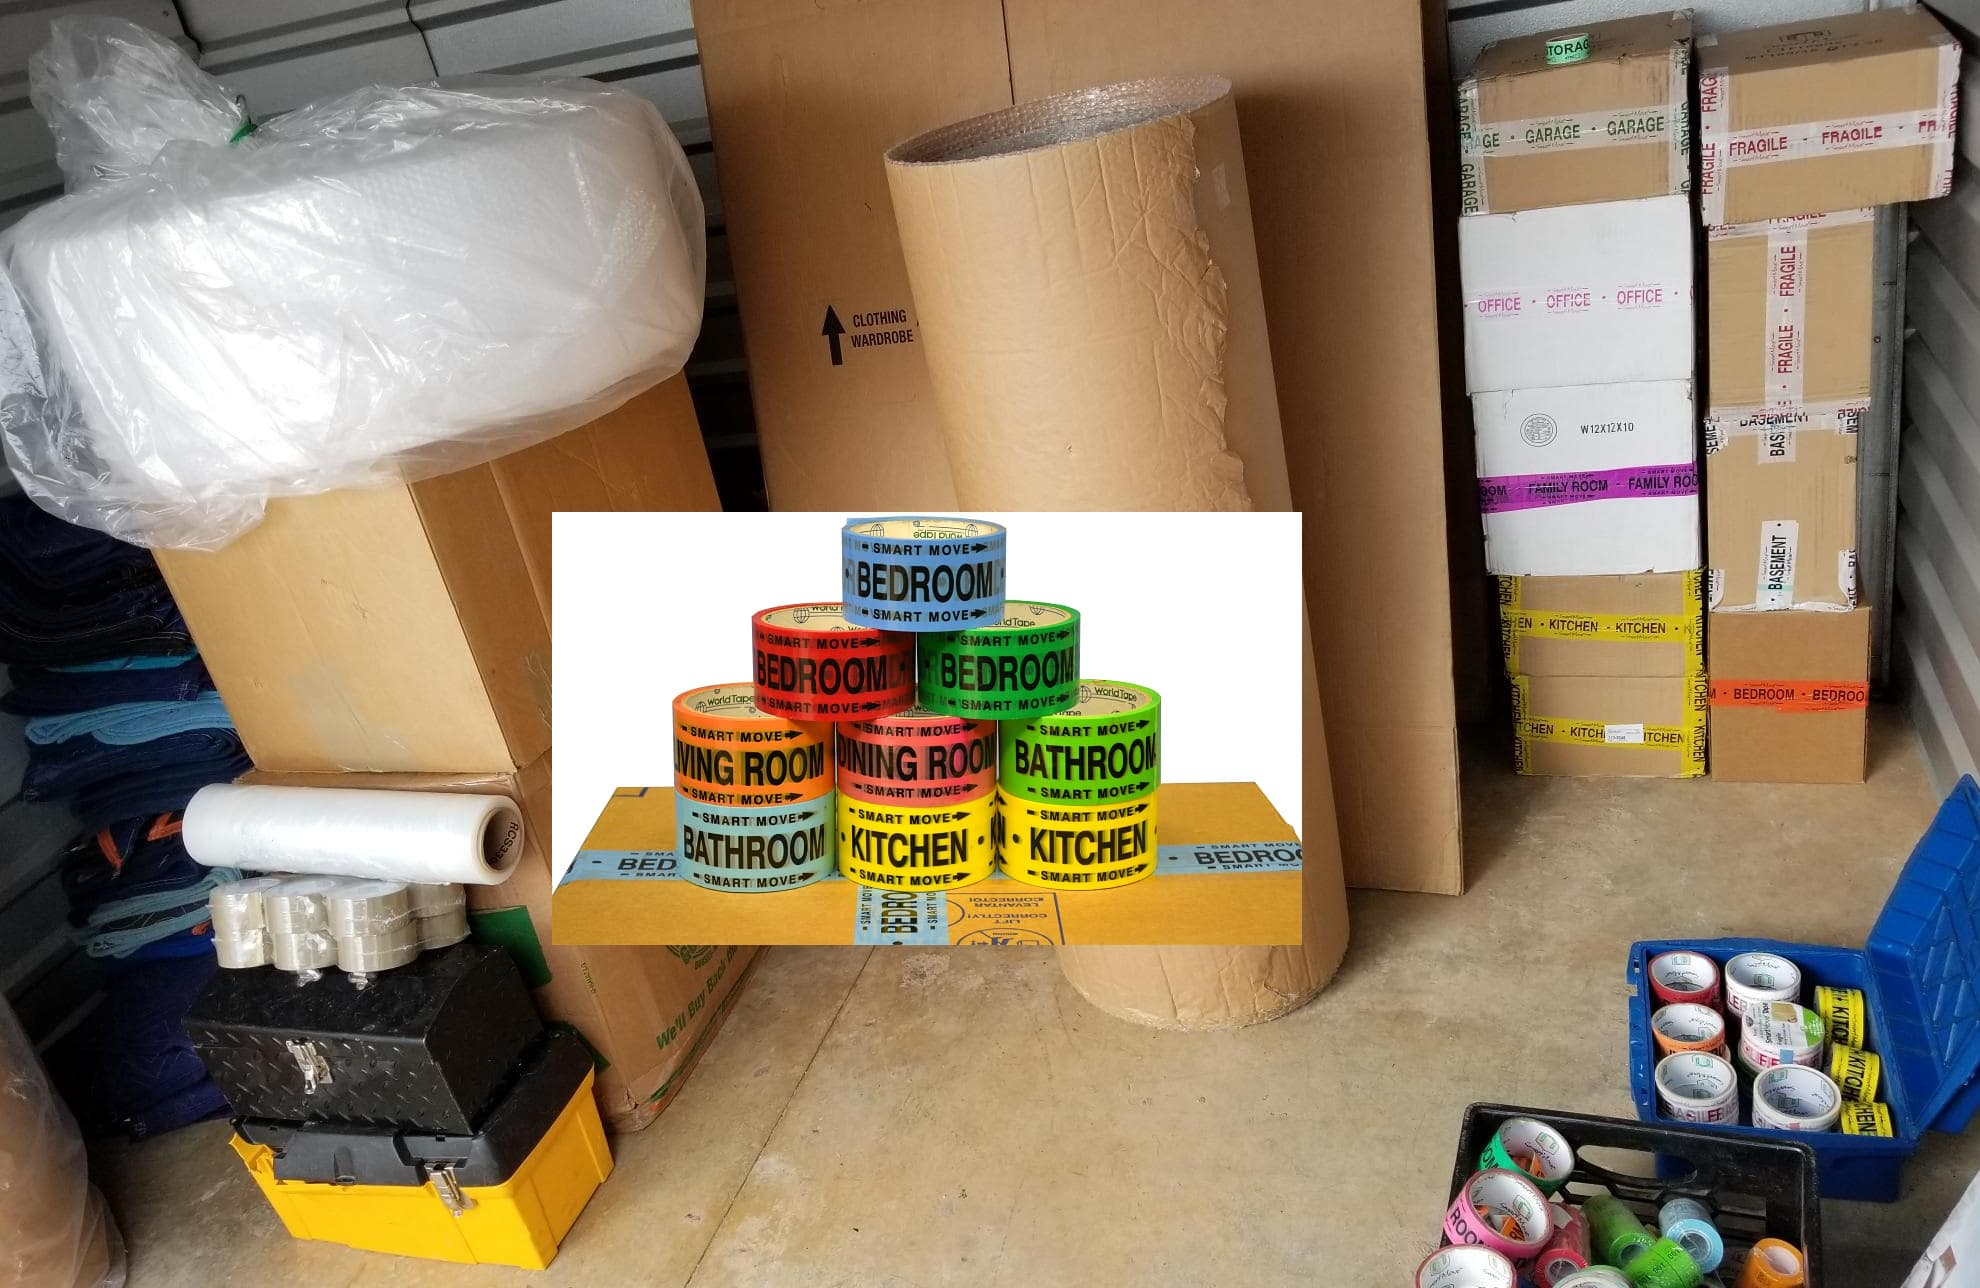 Packing services cost